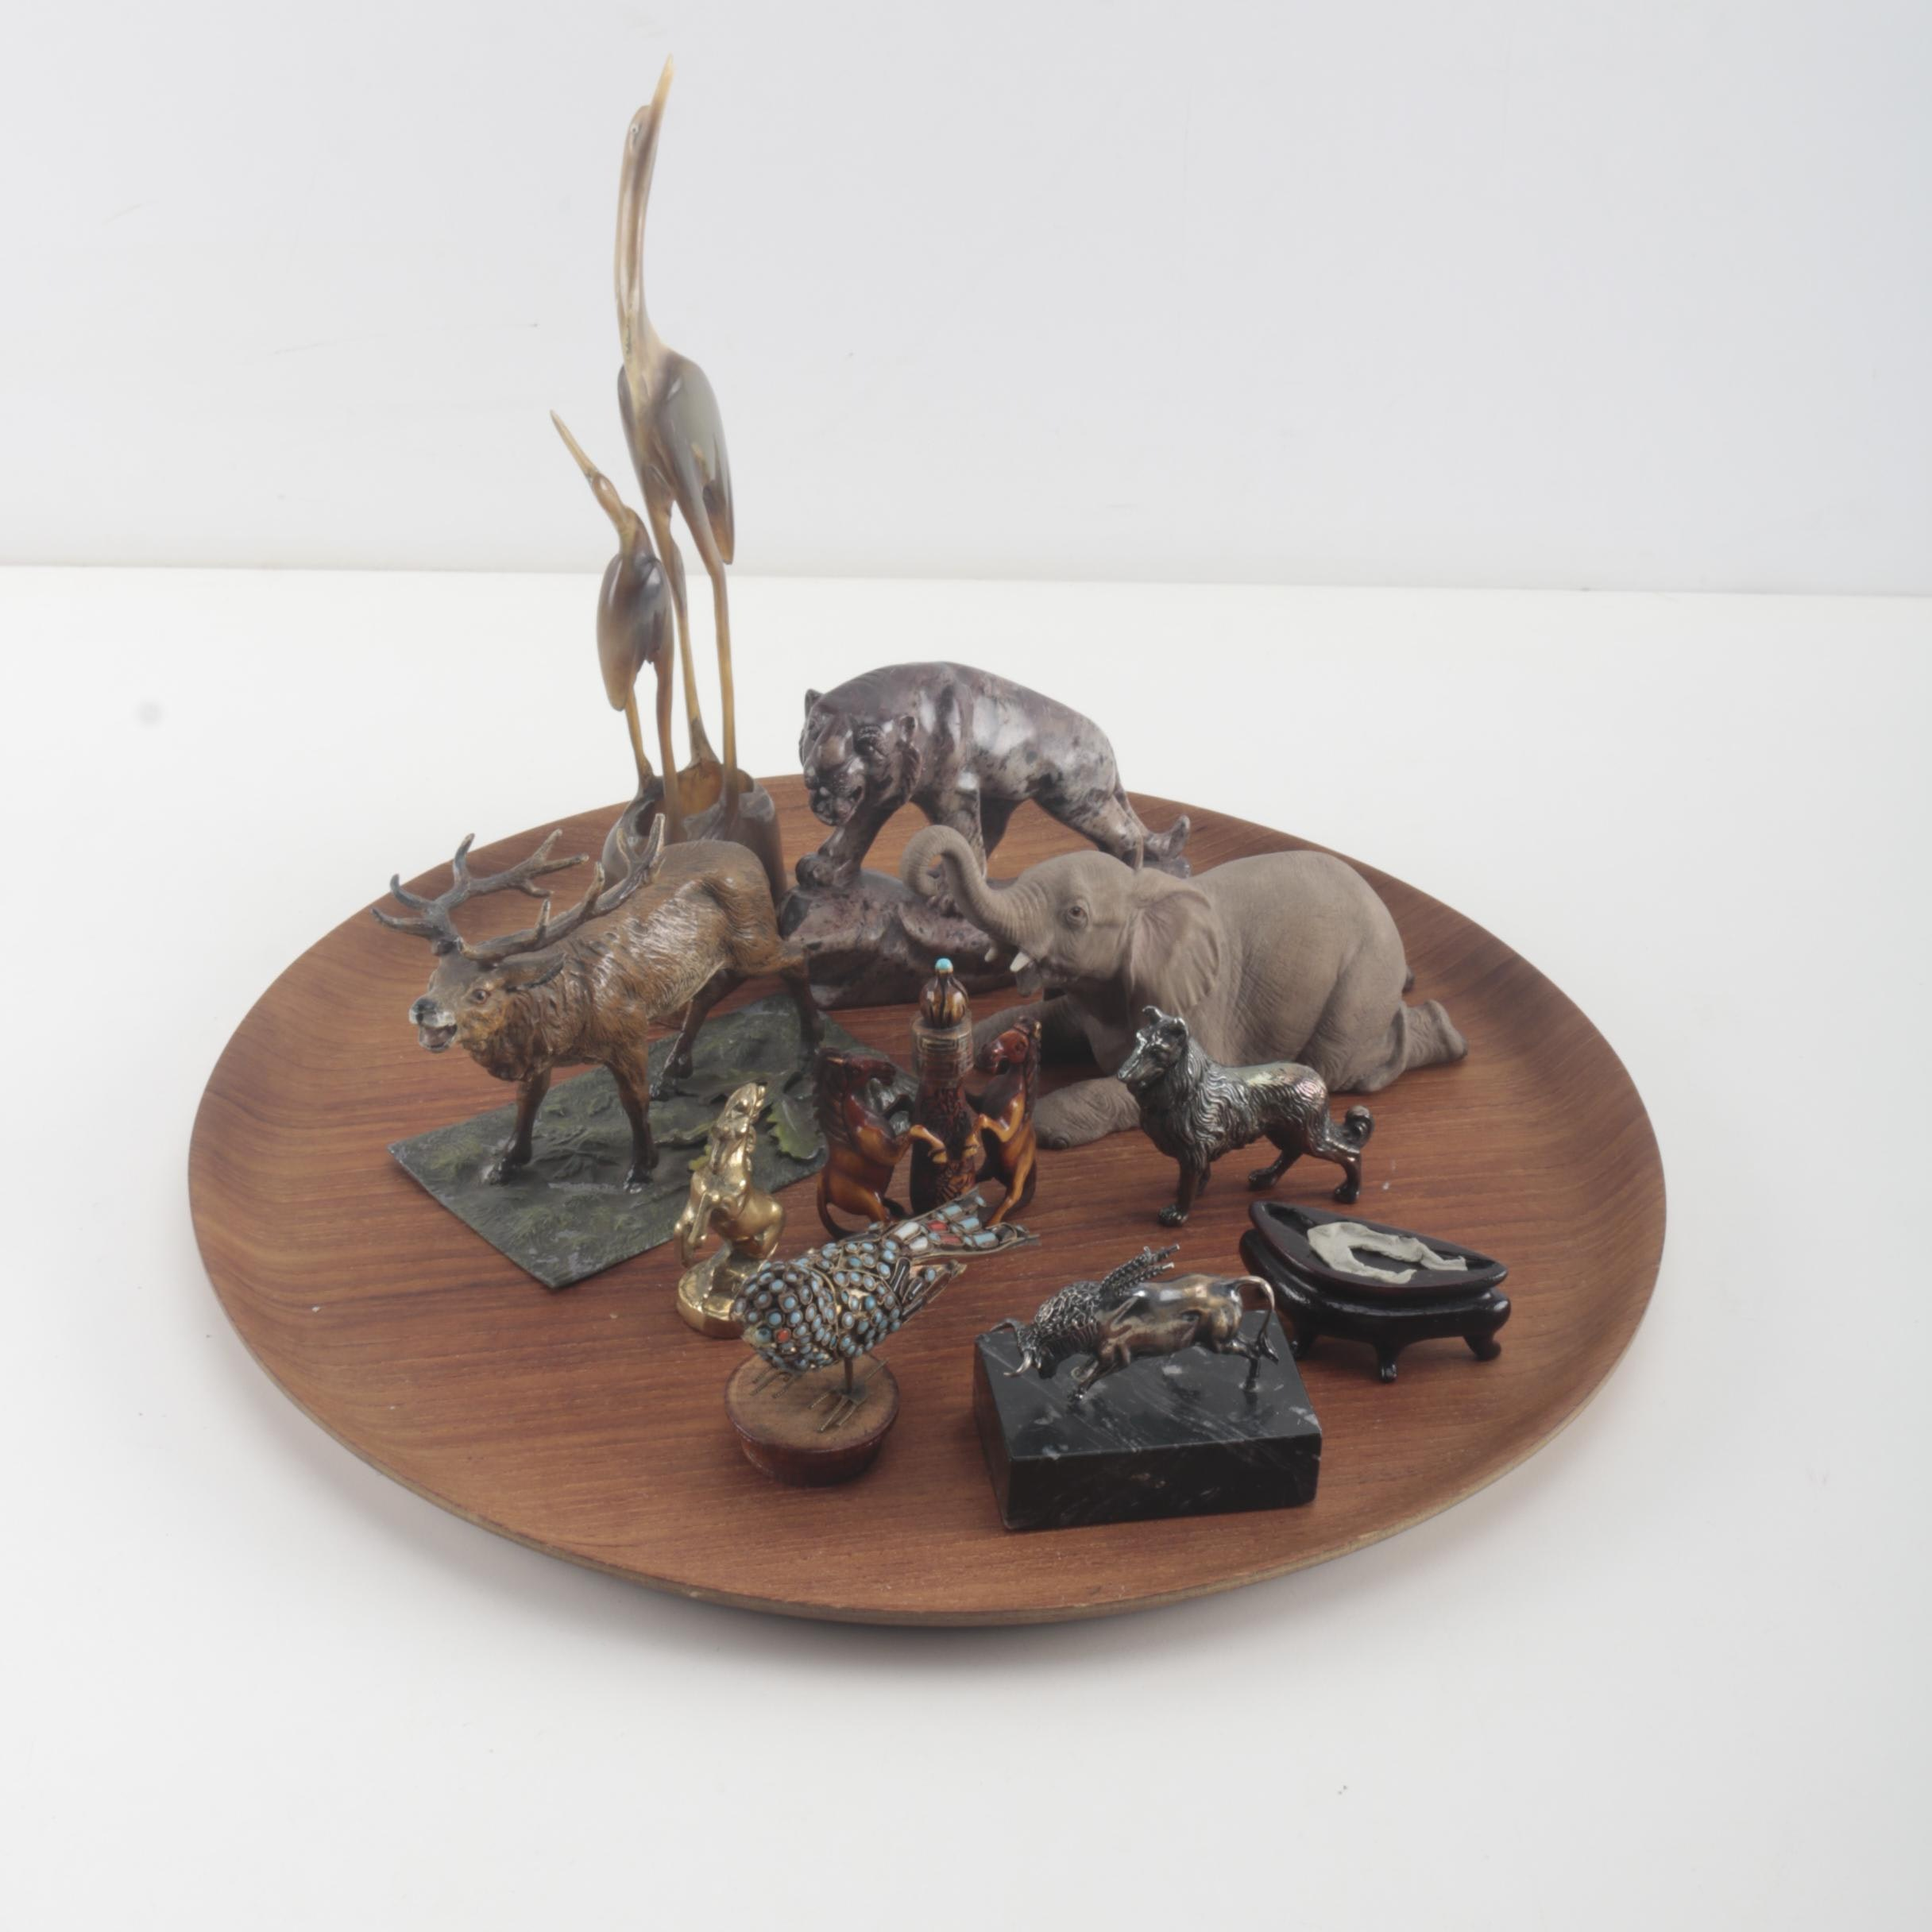 Assorted Animal Figurines With Wood Tray